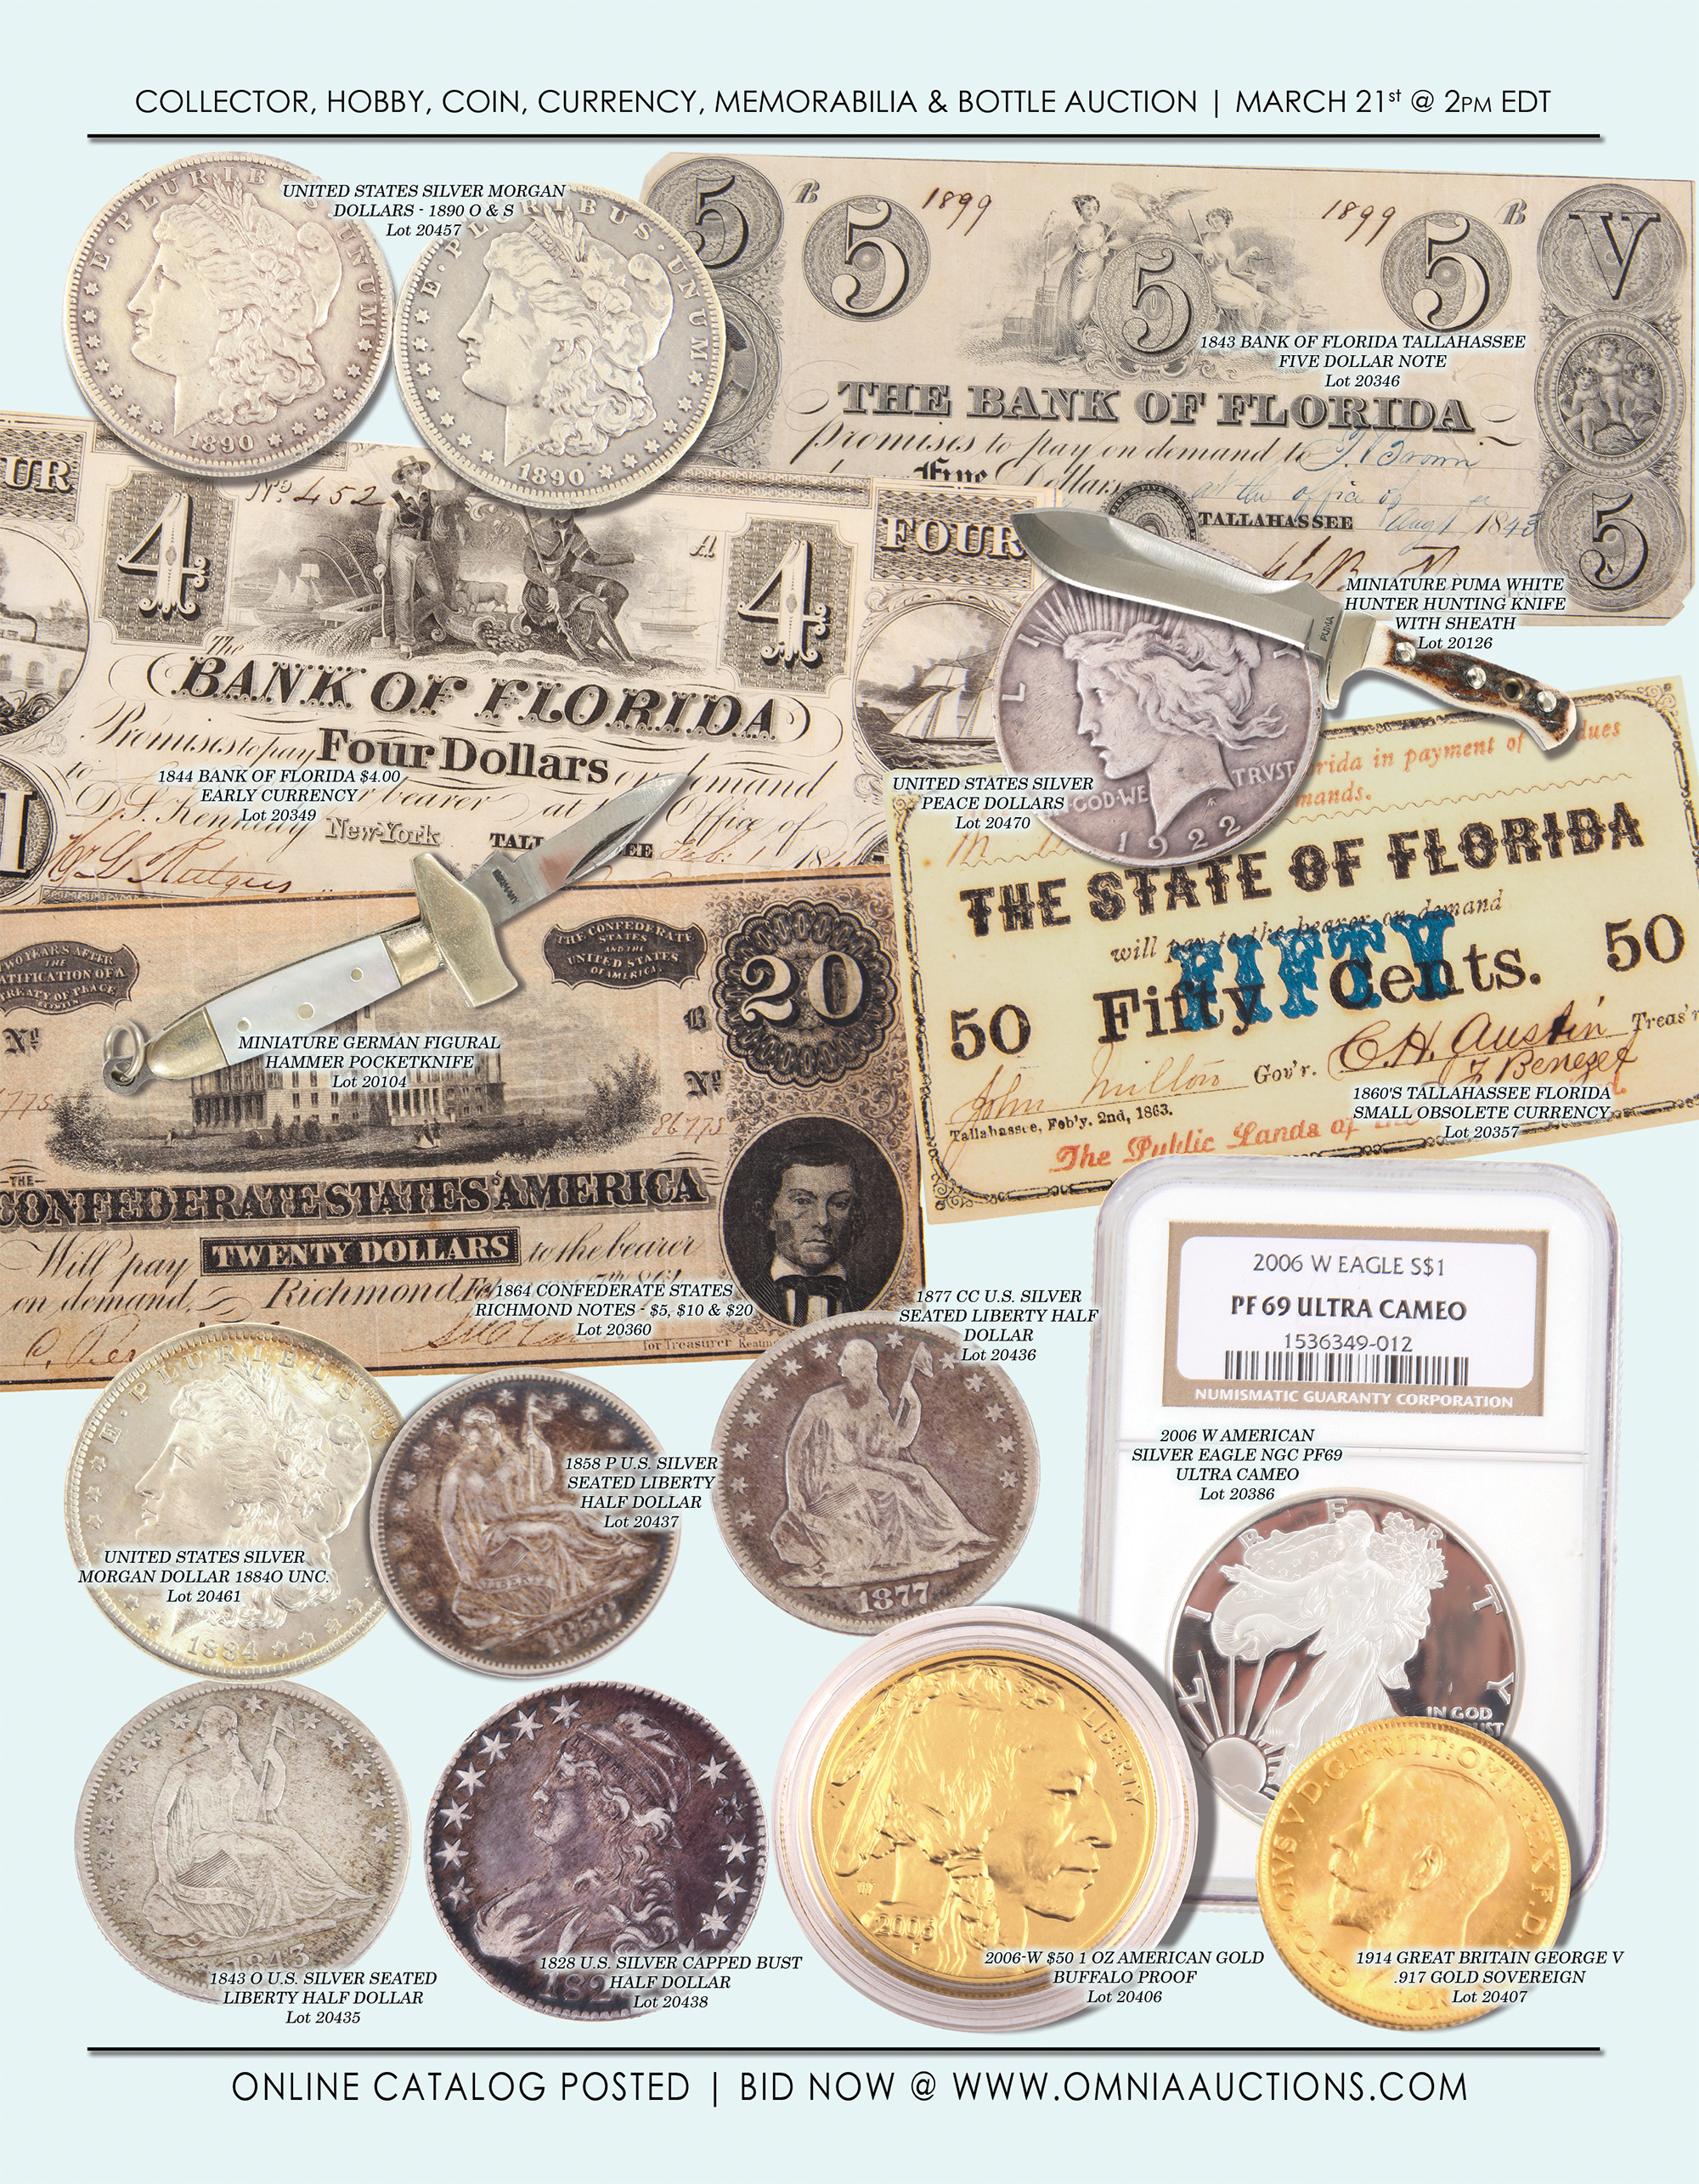 Collector, Hobby, Coin, Currency, Sport, Memorabilia & Bottle Auction - Coin & Currency